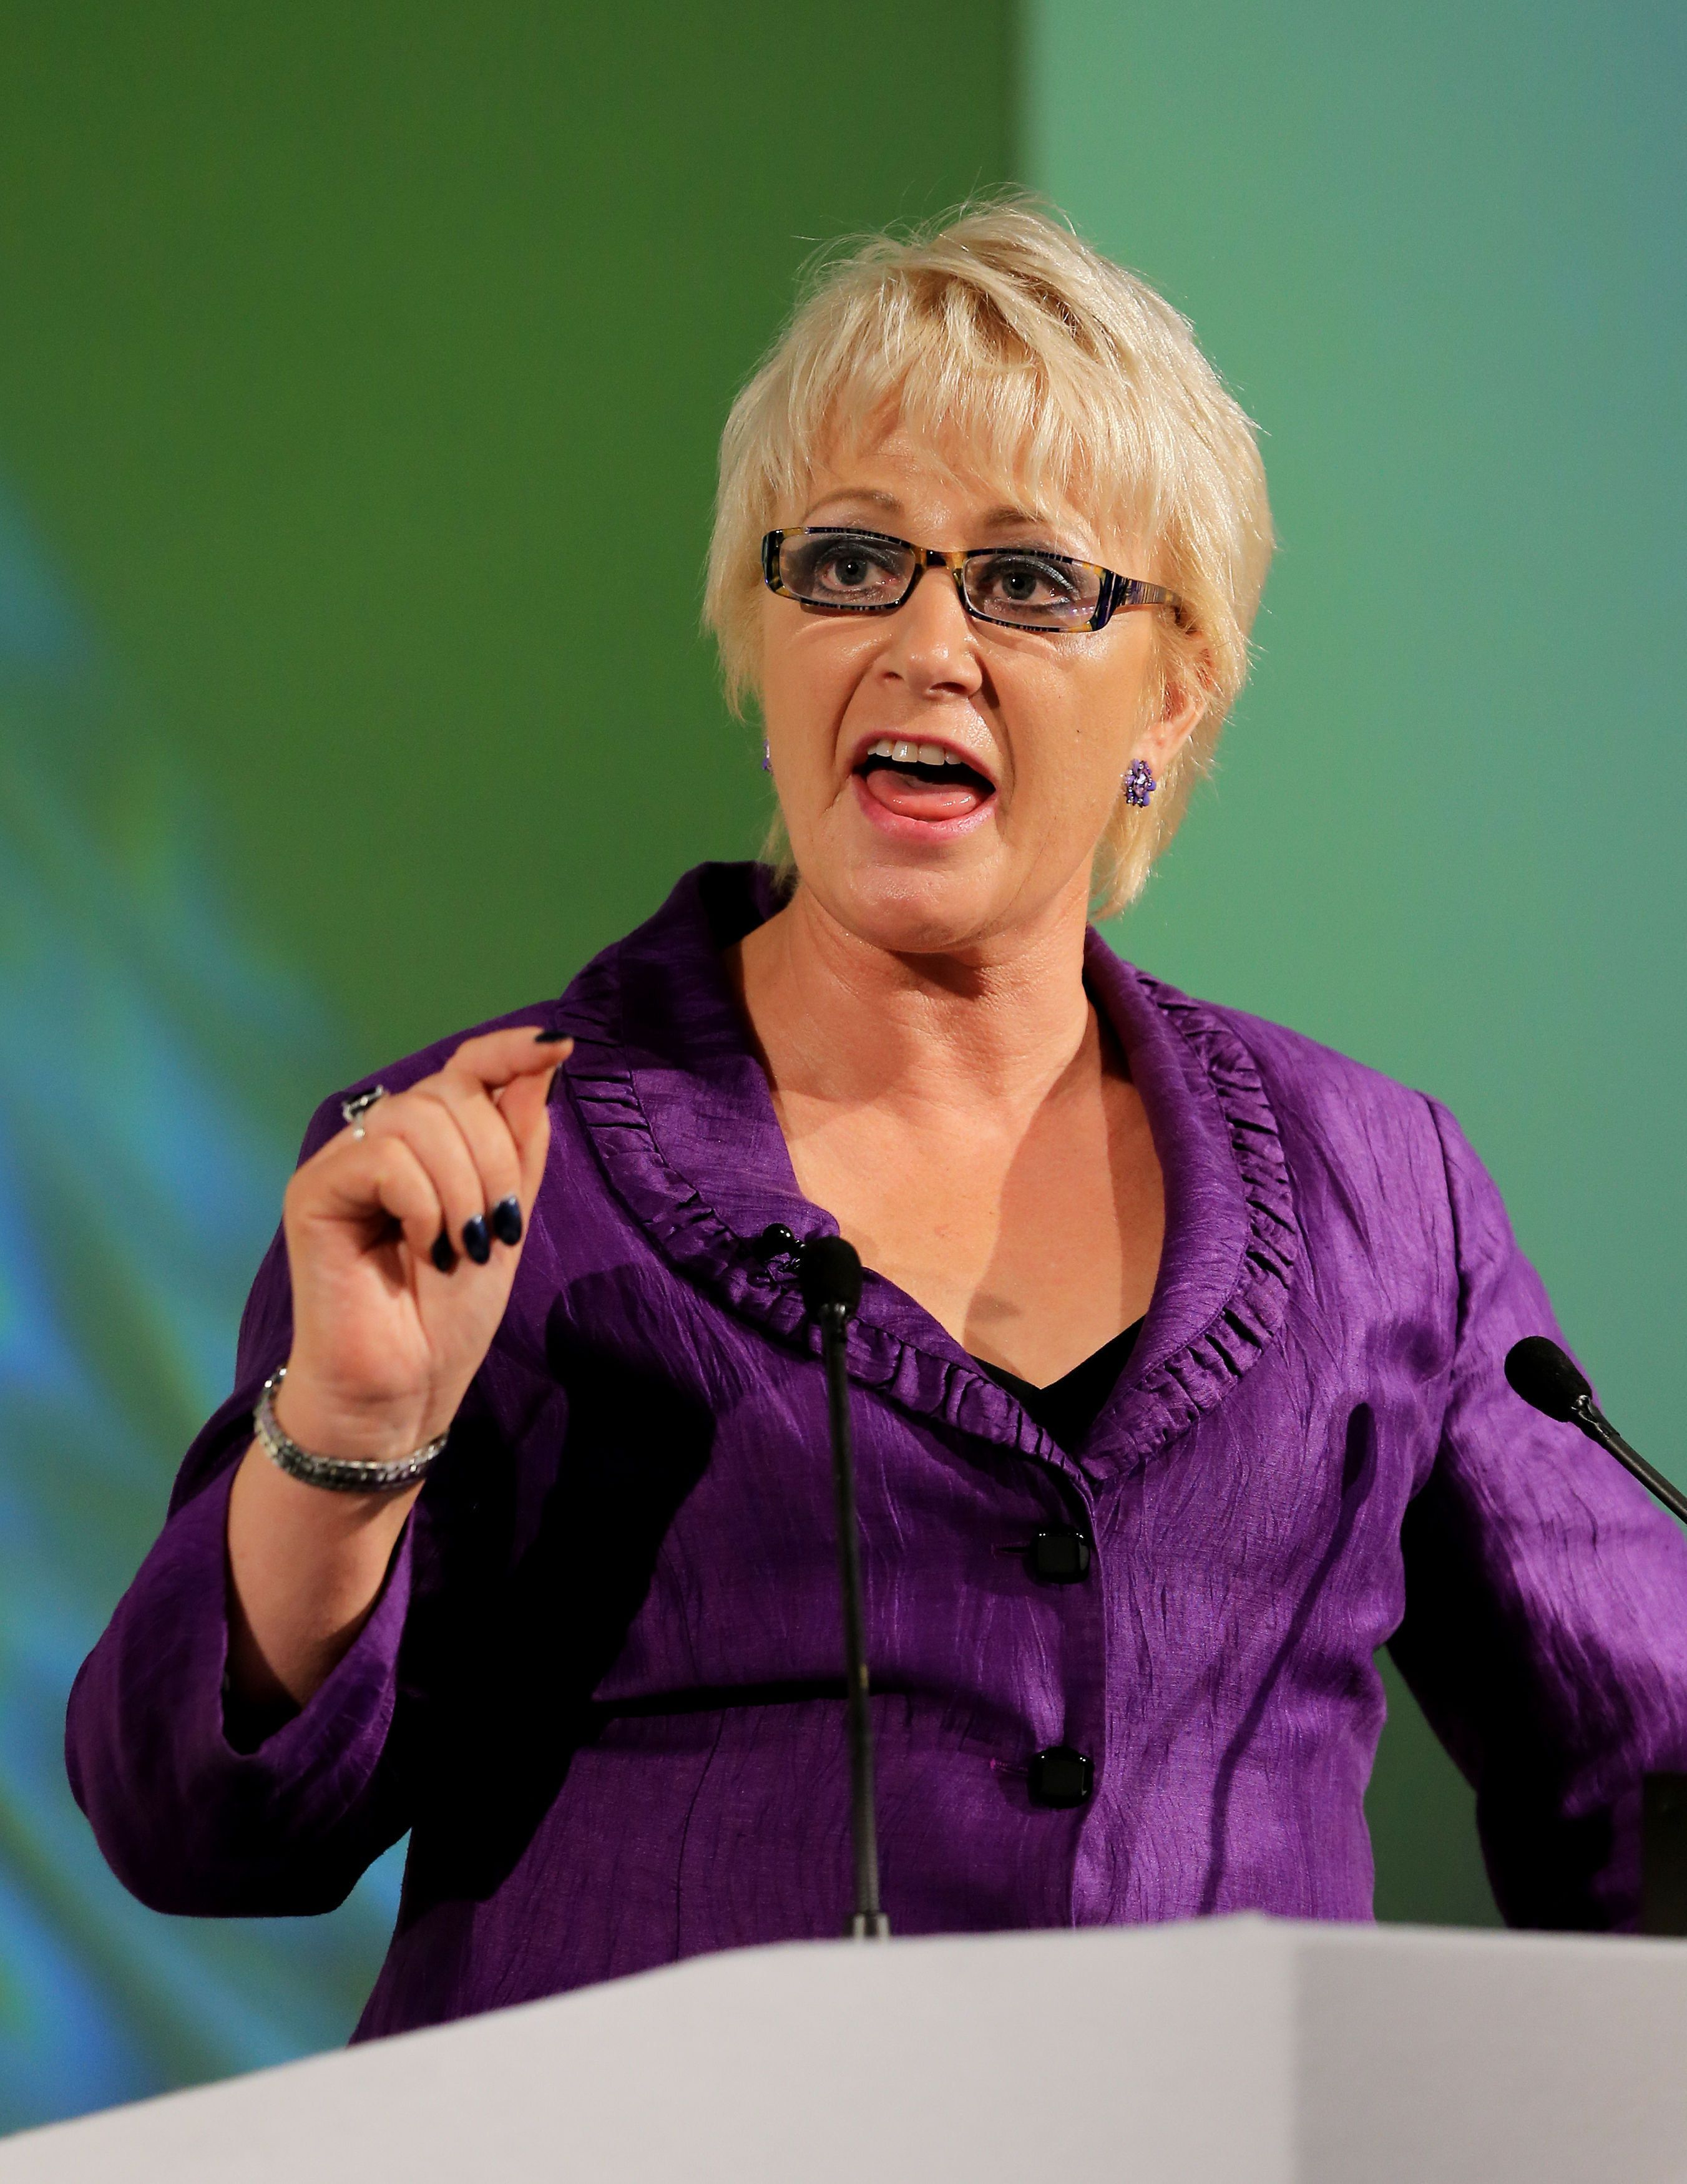 Ukip MEP Jane Collins made remarks about the town's child abuse